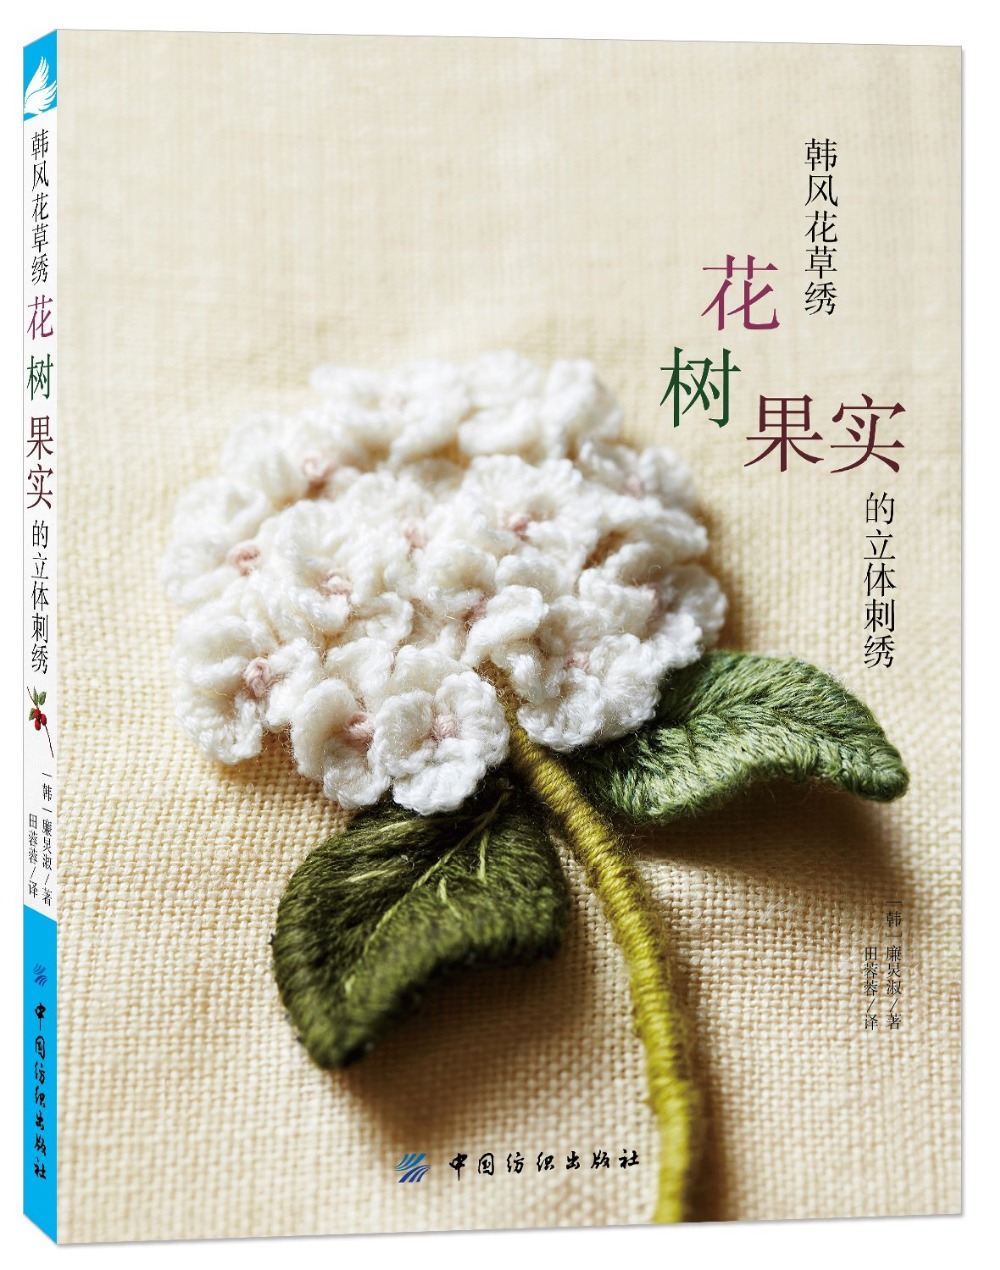 A three-dimensional embroidery of flowers, trees, and fruits / Chinese embroidery Handmade Art Design Book lto battery bms 5s 12v 80a 100a 200a lithium titanate battery circuit protection board bms pcm for lto battery pack same port